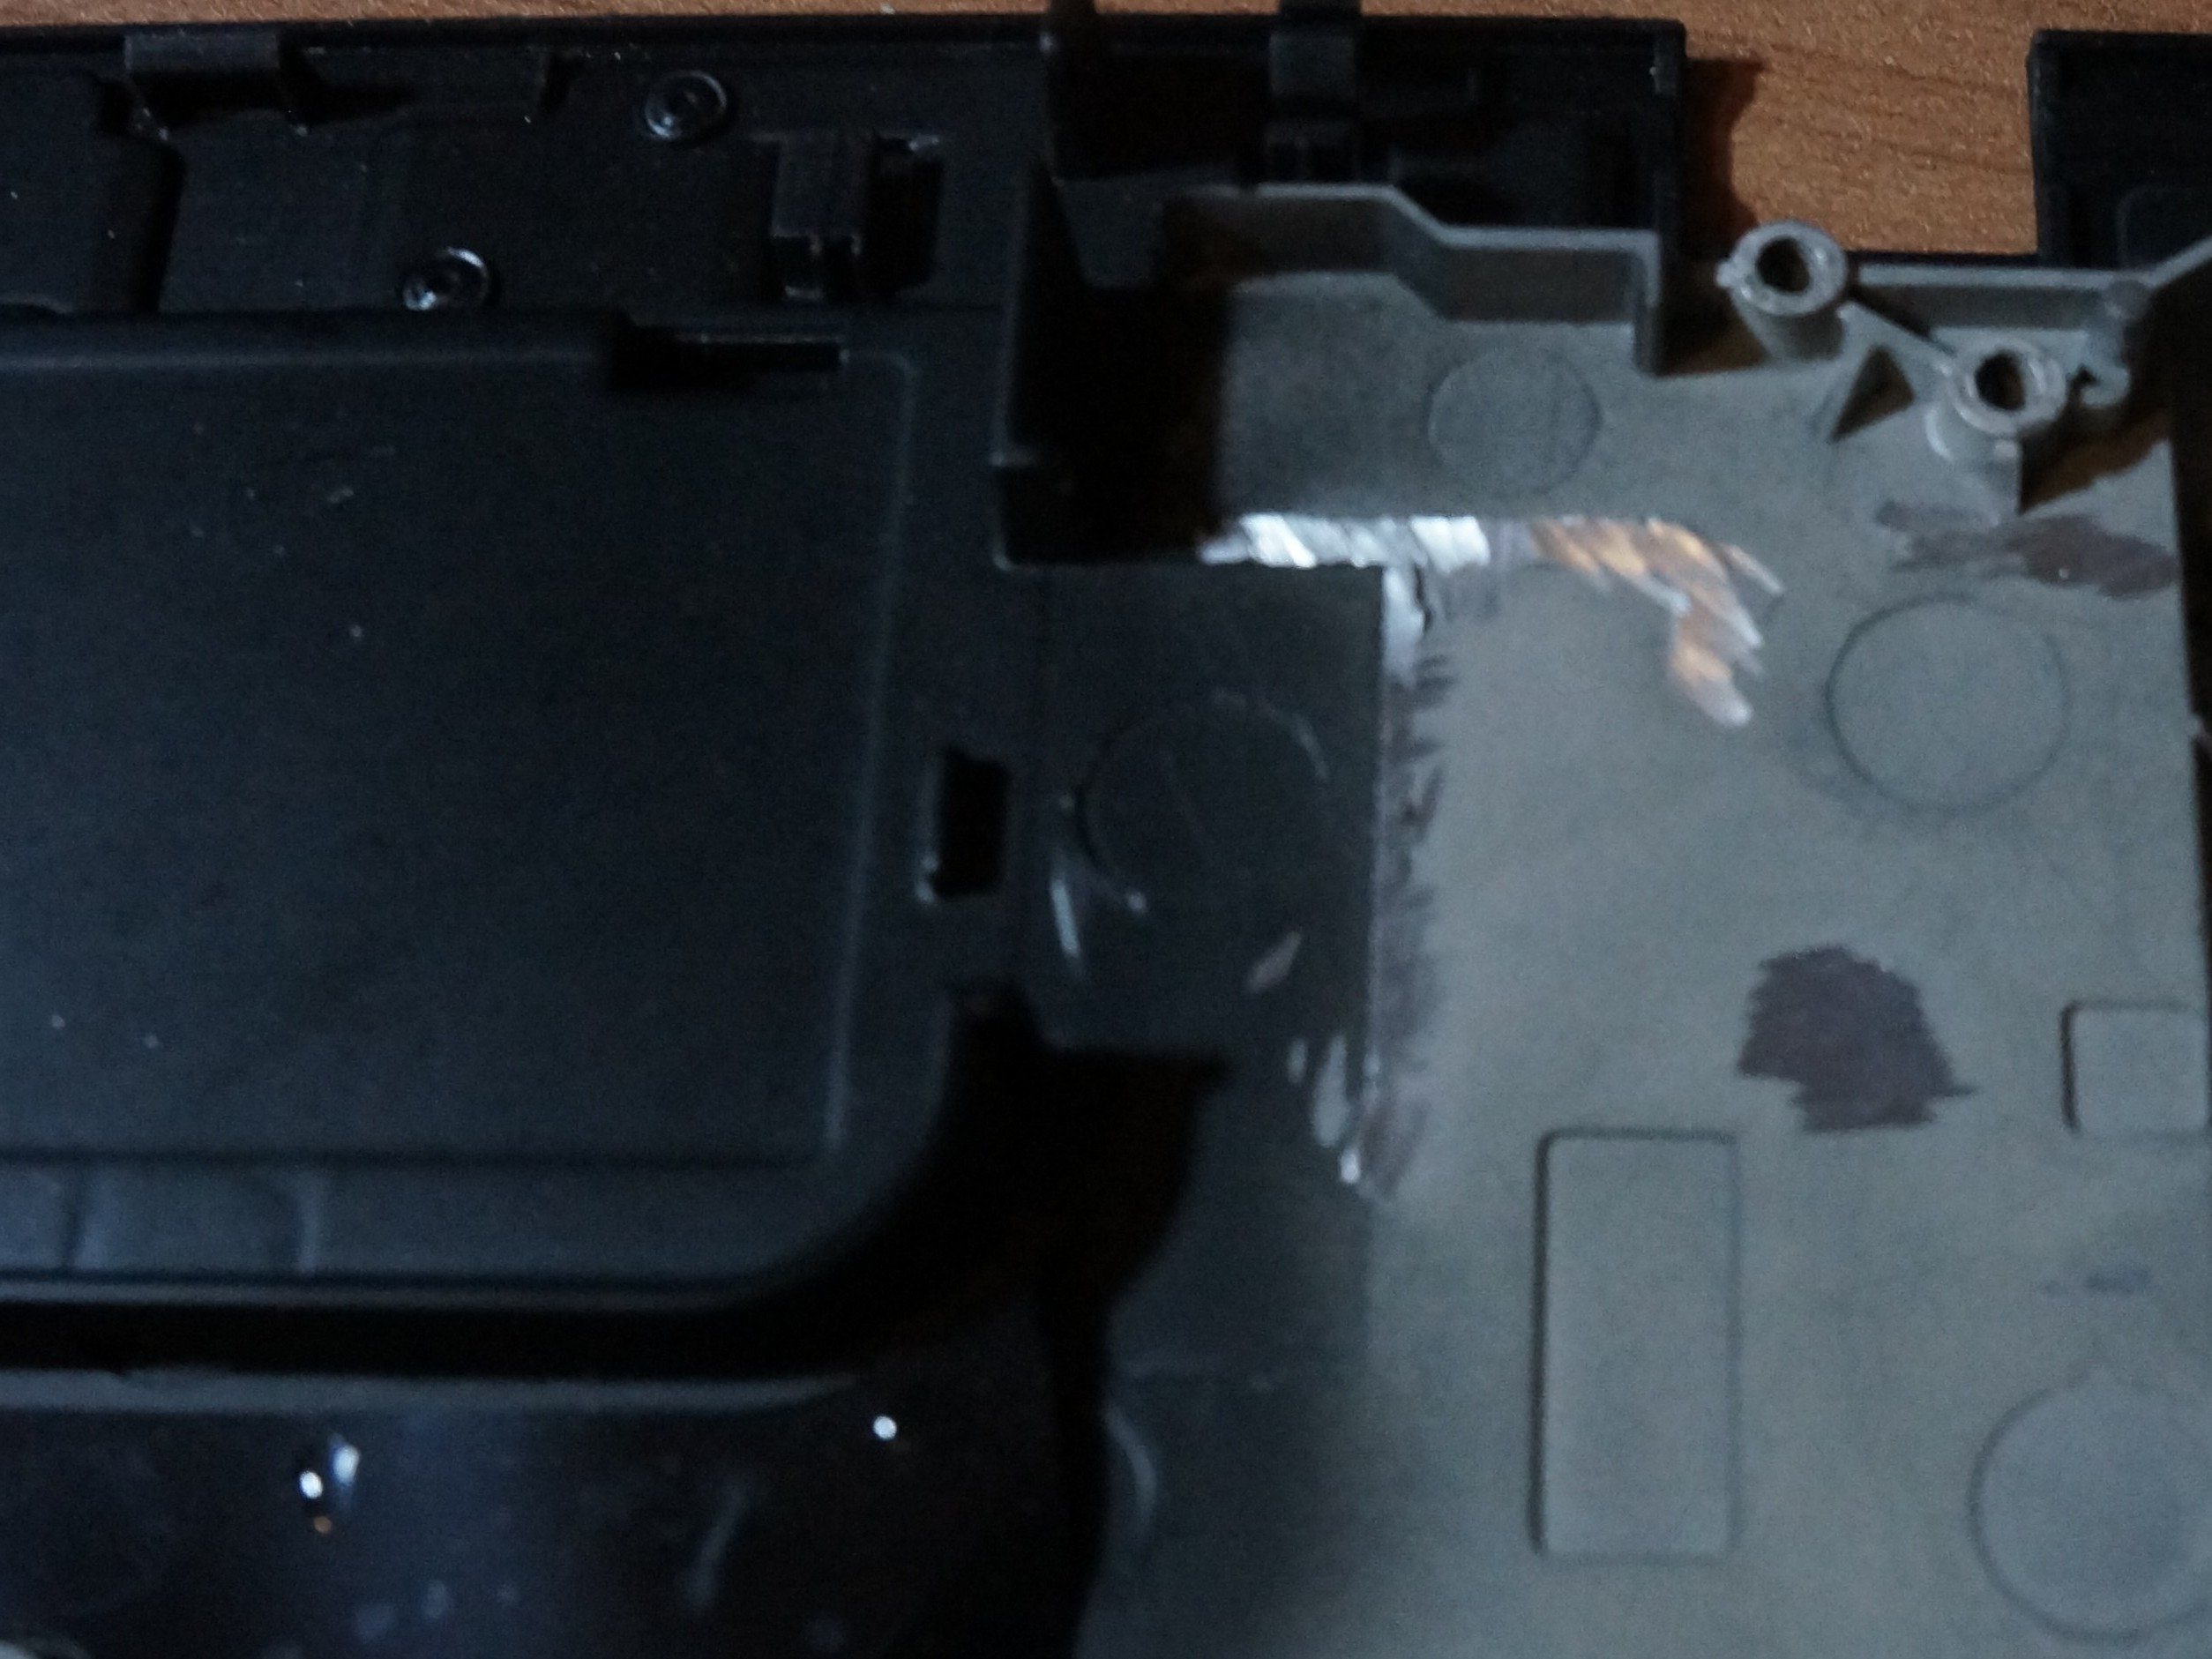 A FrankenPad Story: T25 with Quad-Core CPU and UHD LCD Panel